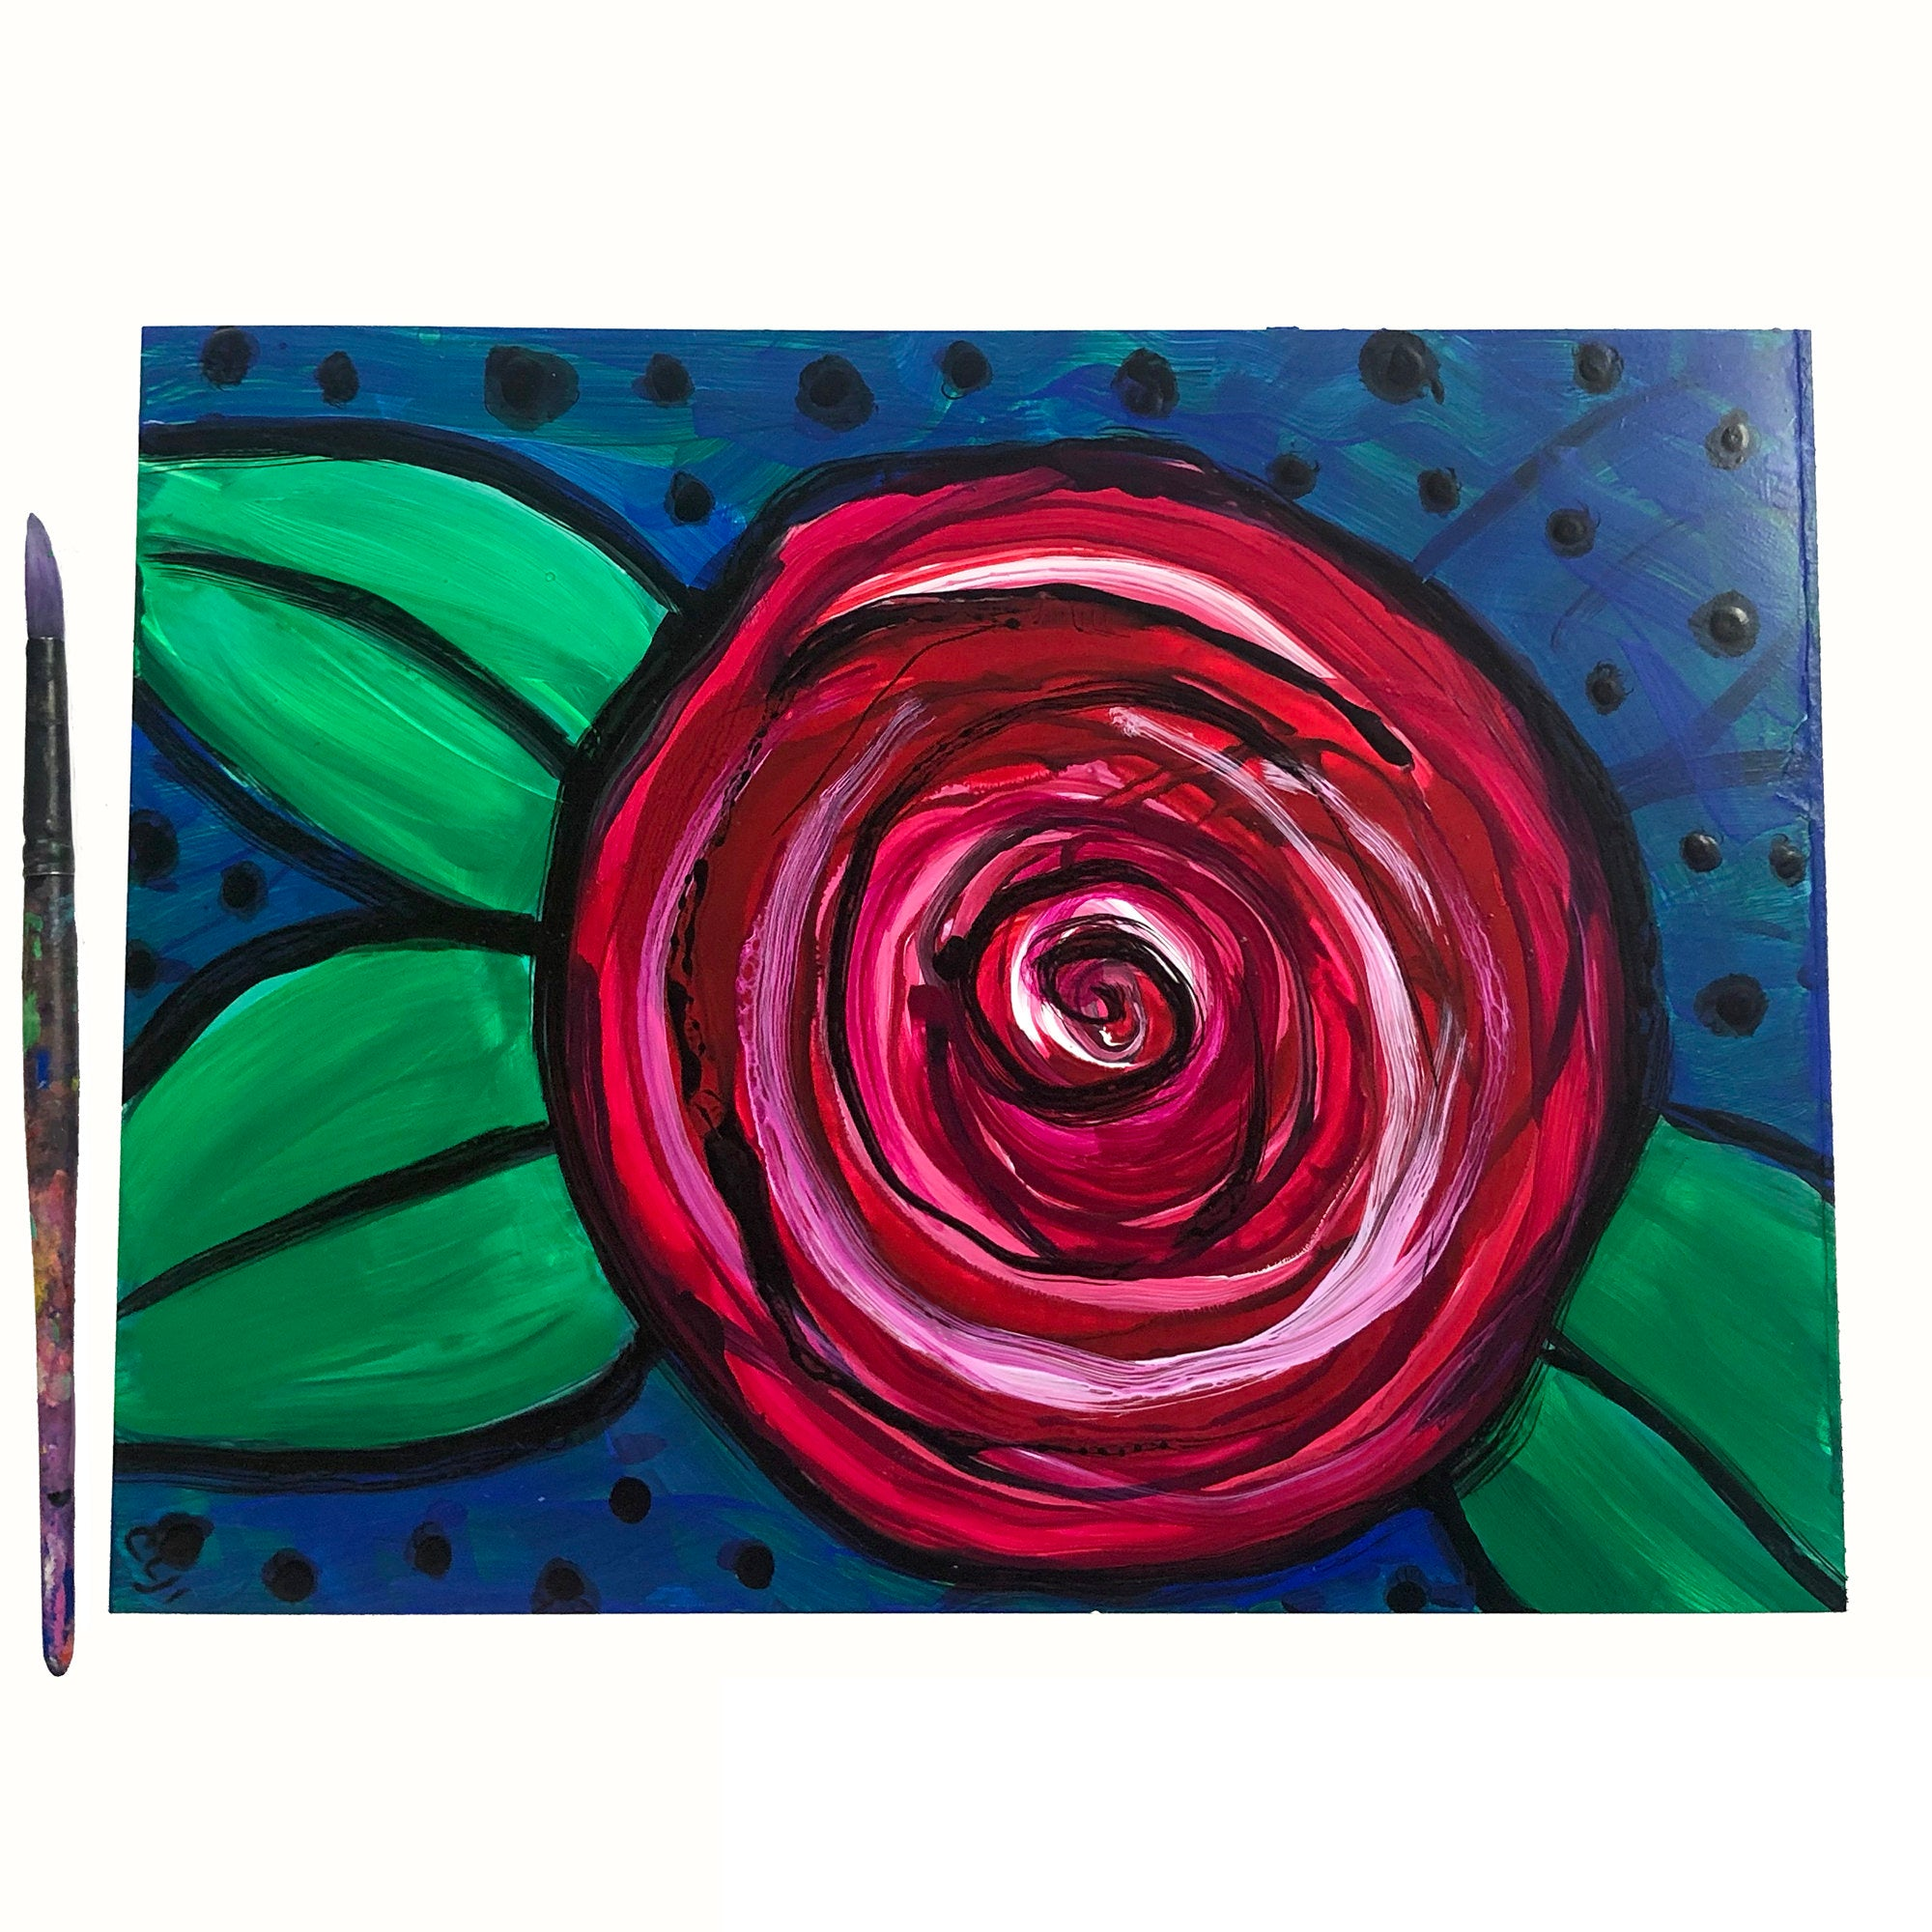 Red Rose Art on Paper - 9x12 Original Floral Acrylic Painting on Yupo Paper - Colorful Artwork by Claudine Intner